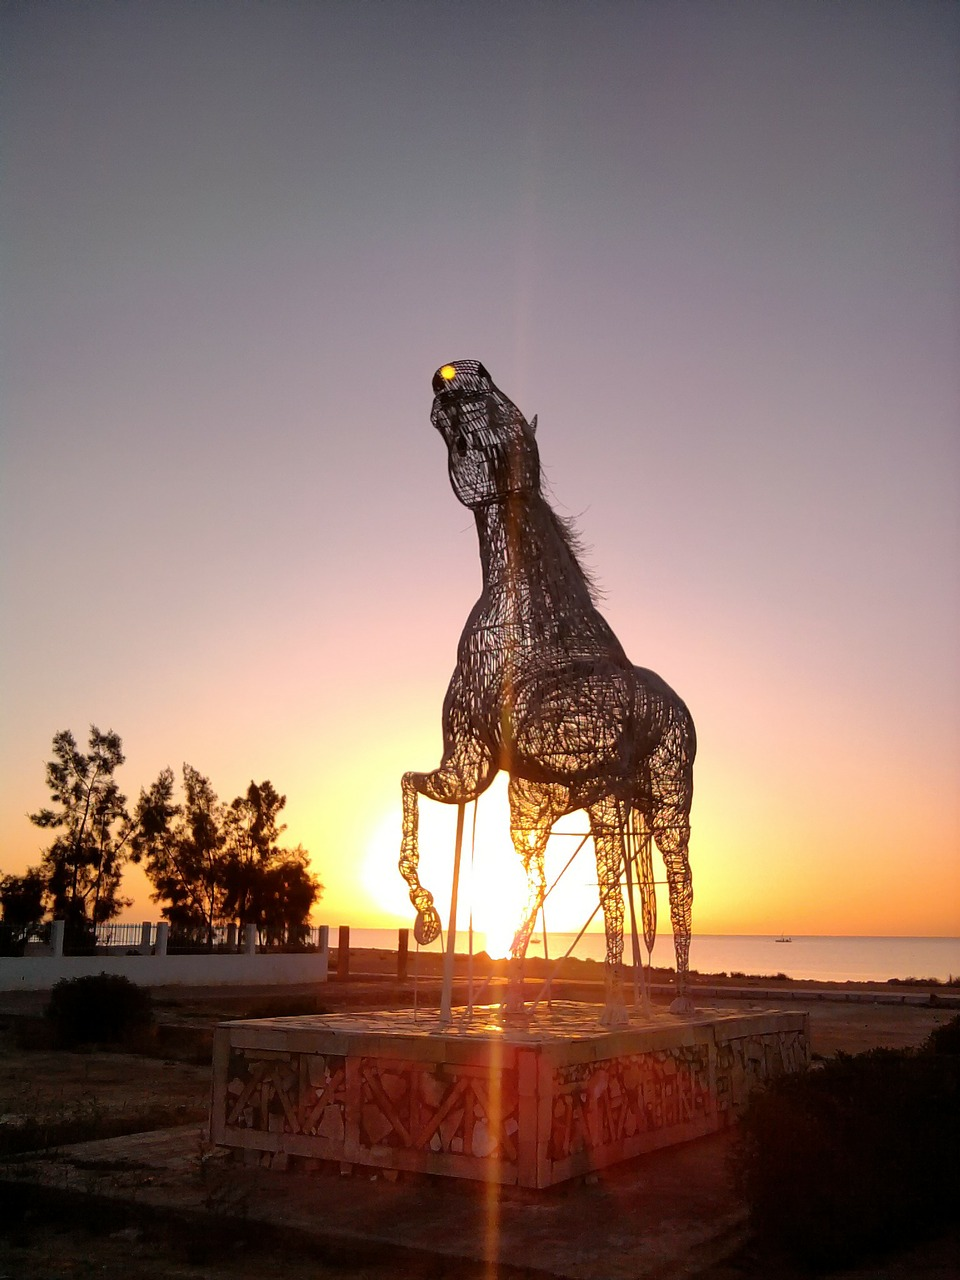 tunisia sculpture horse free photo